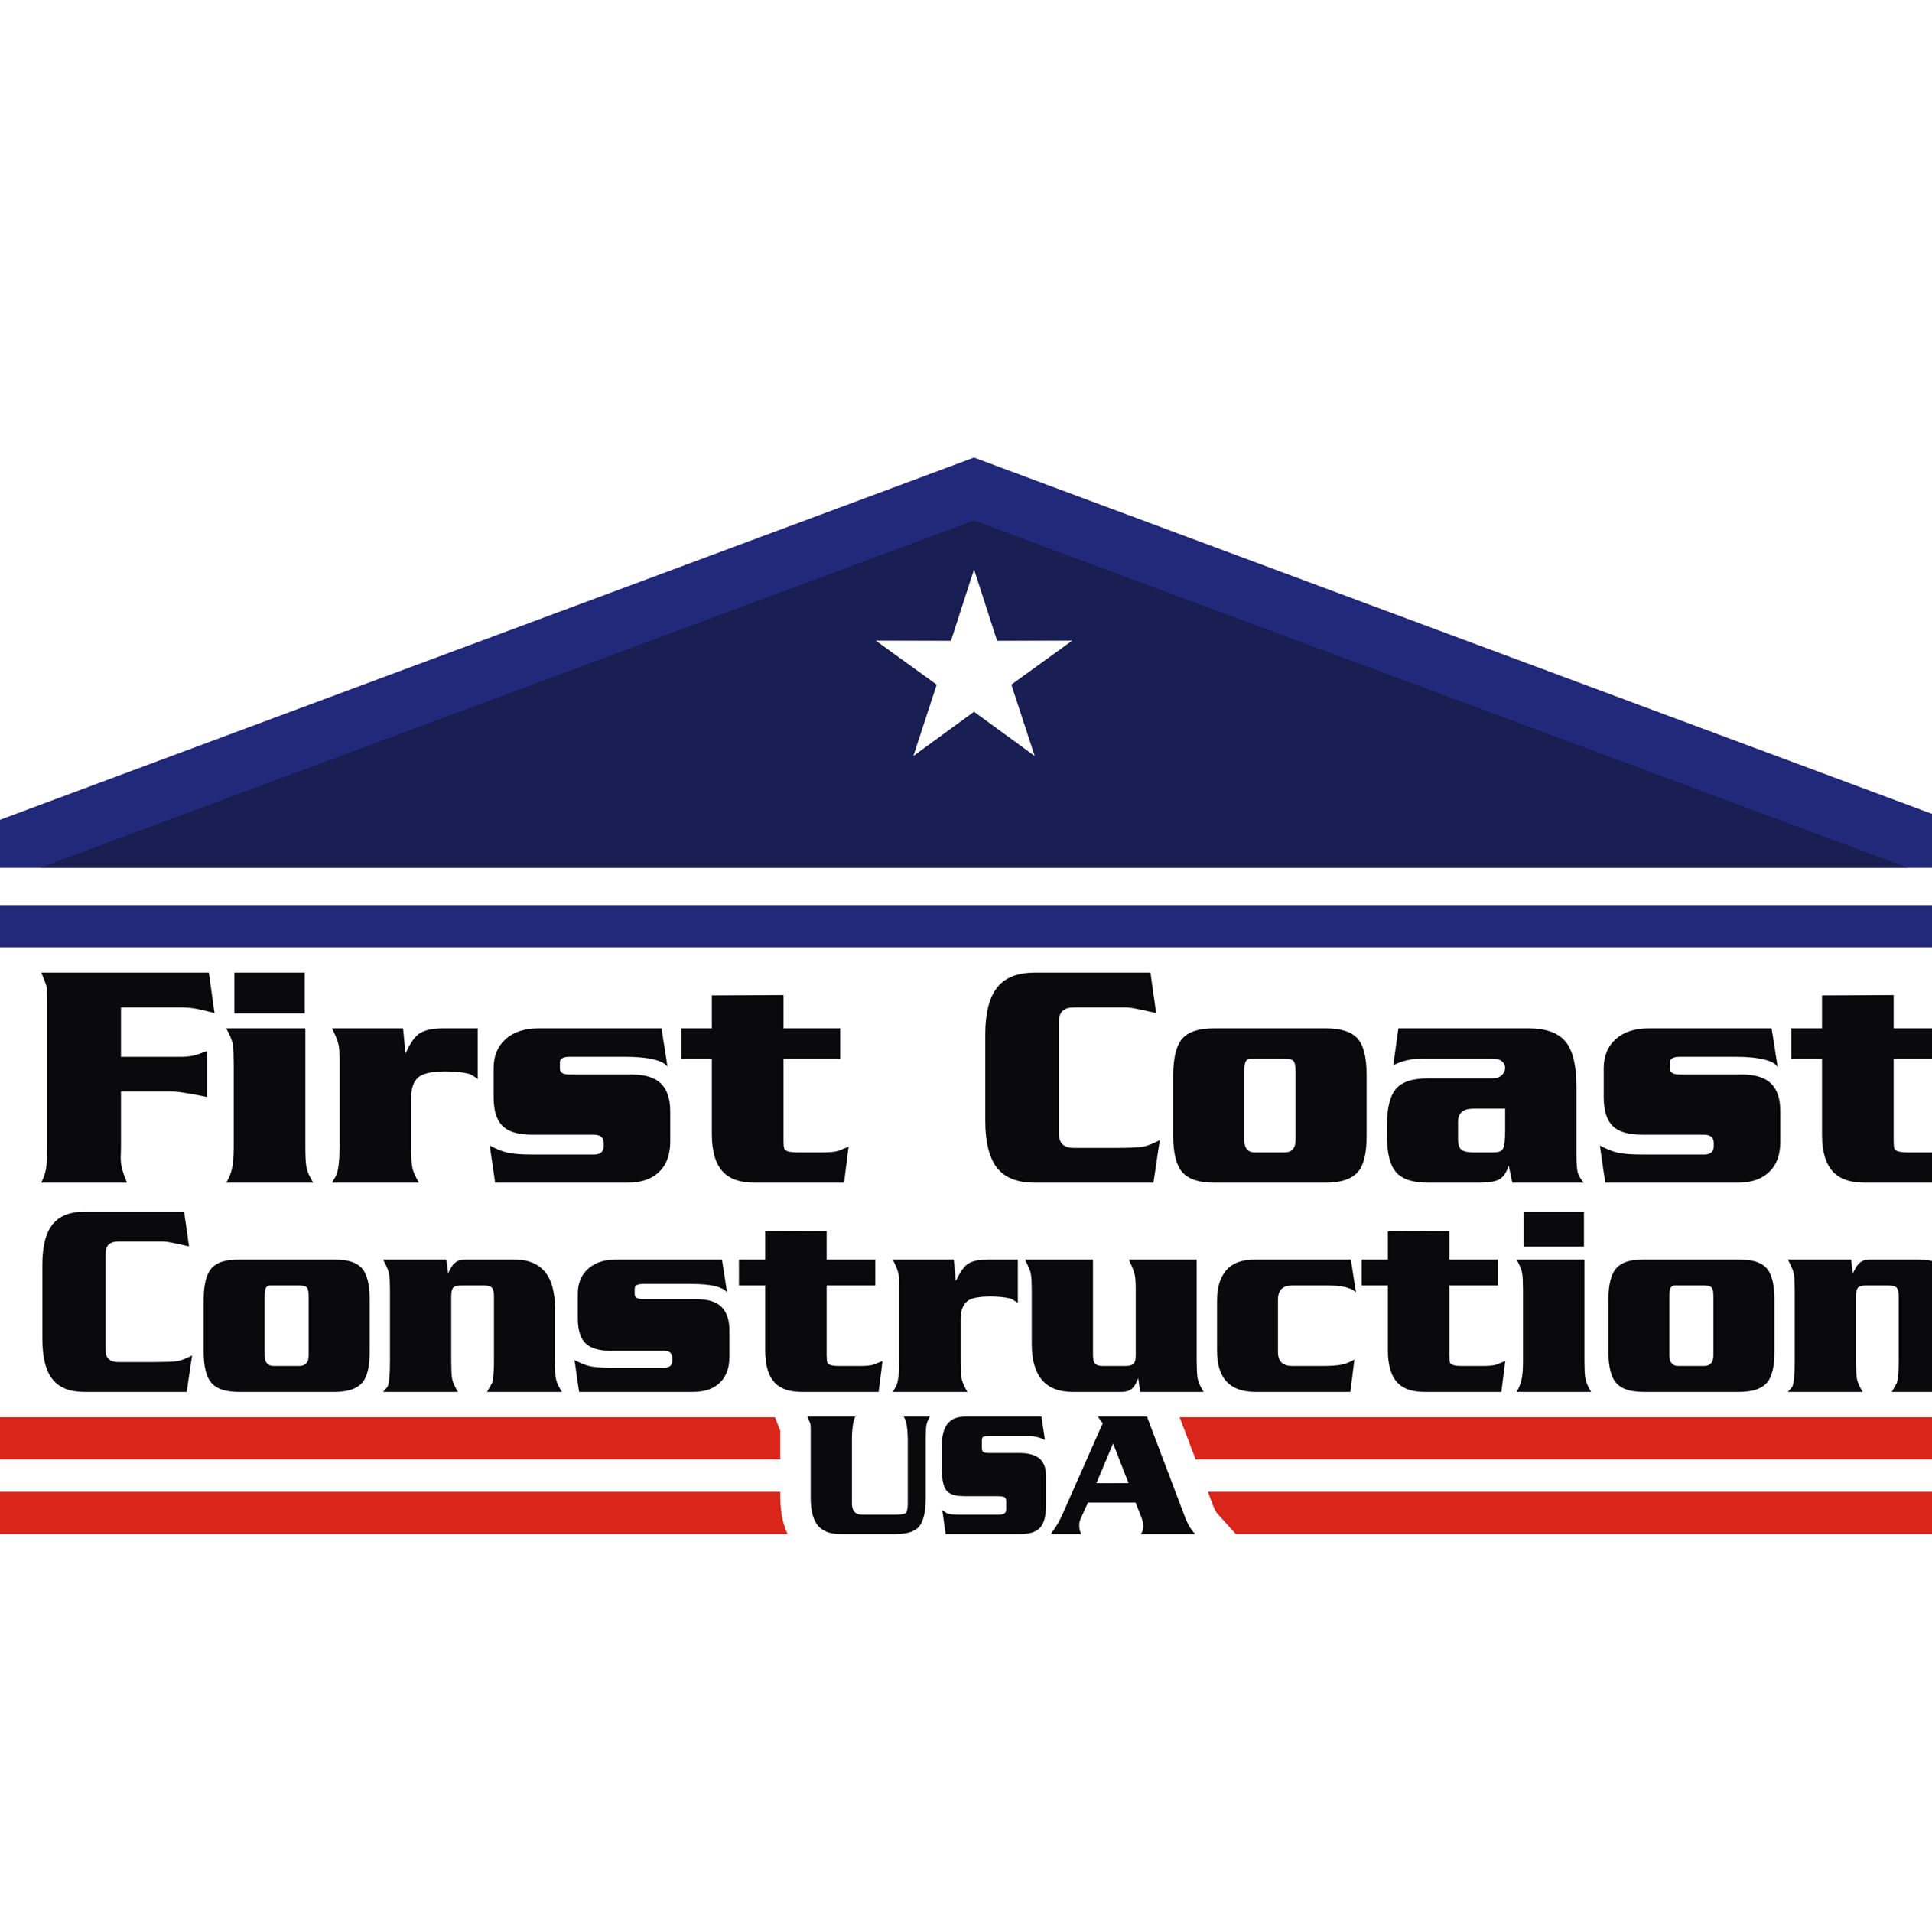 First Coast Construction USA, Inc. image 0